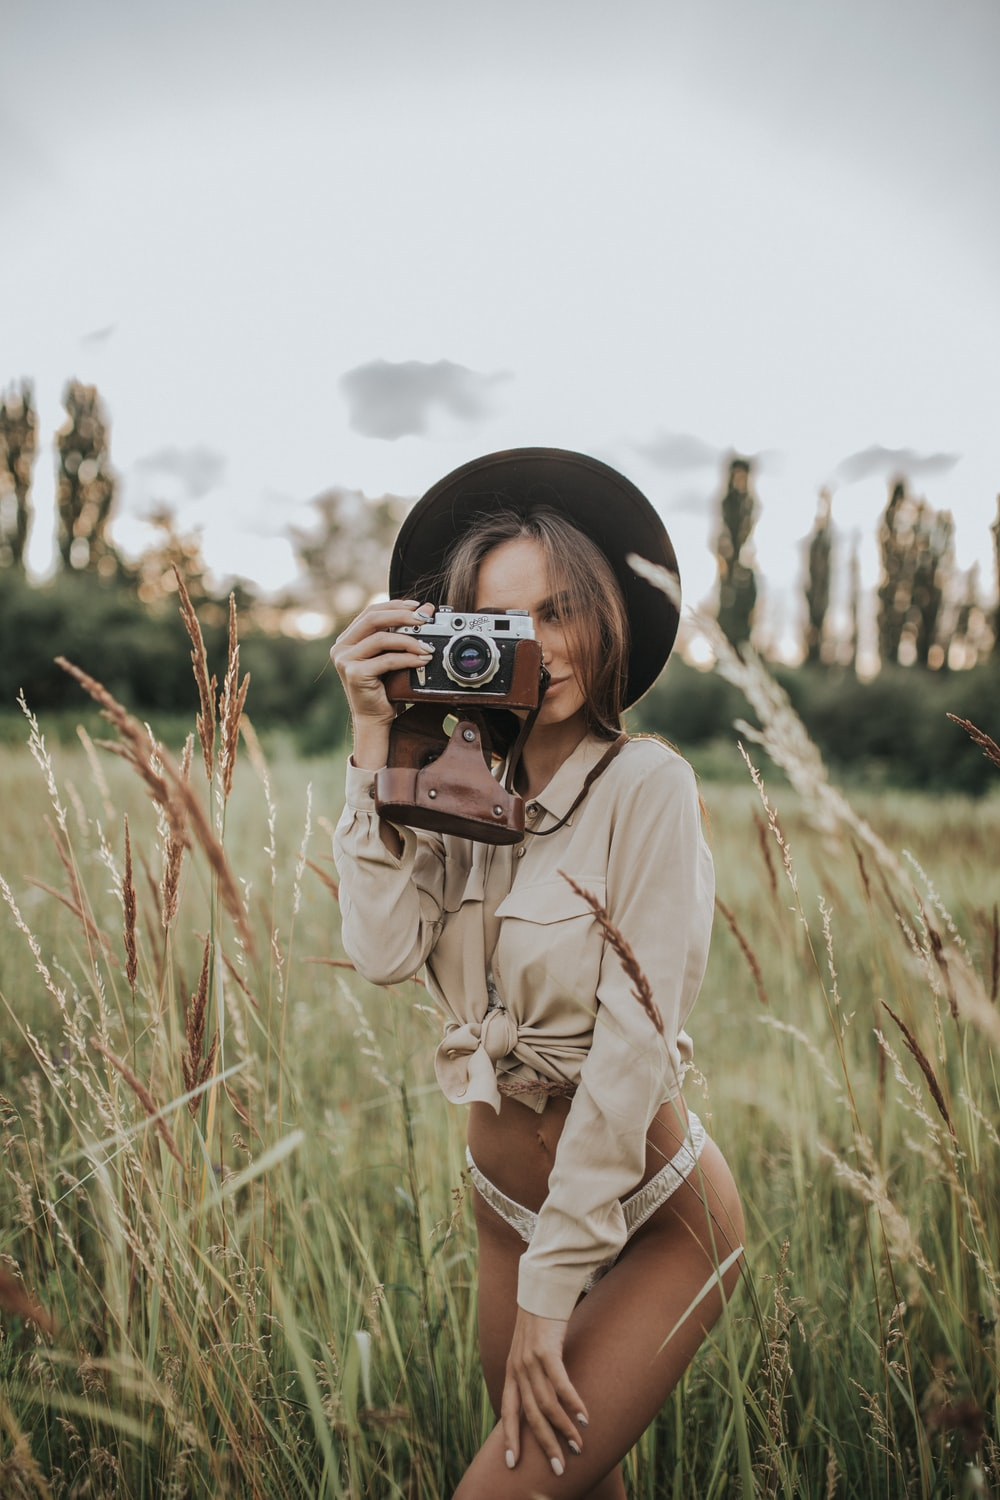 woman wearing white pantie holding gray and brown camera